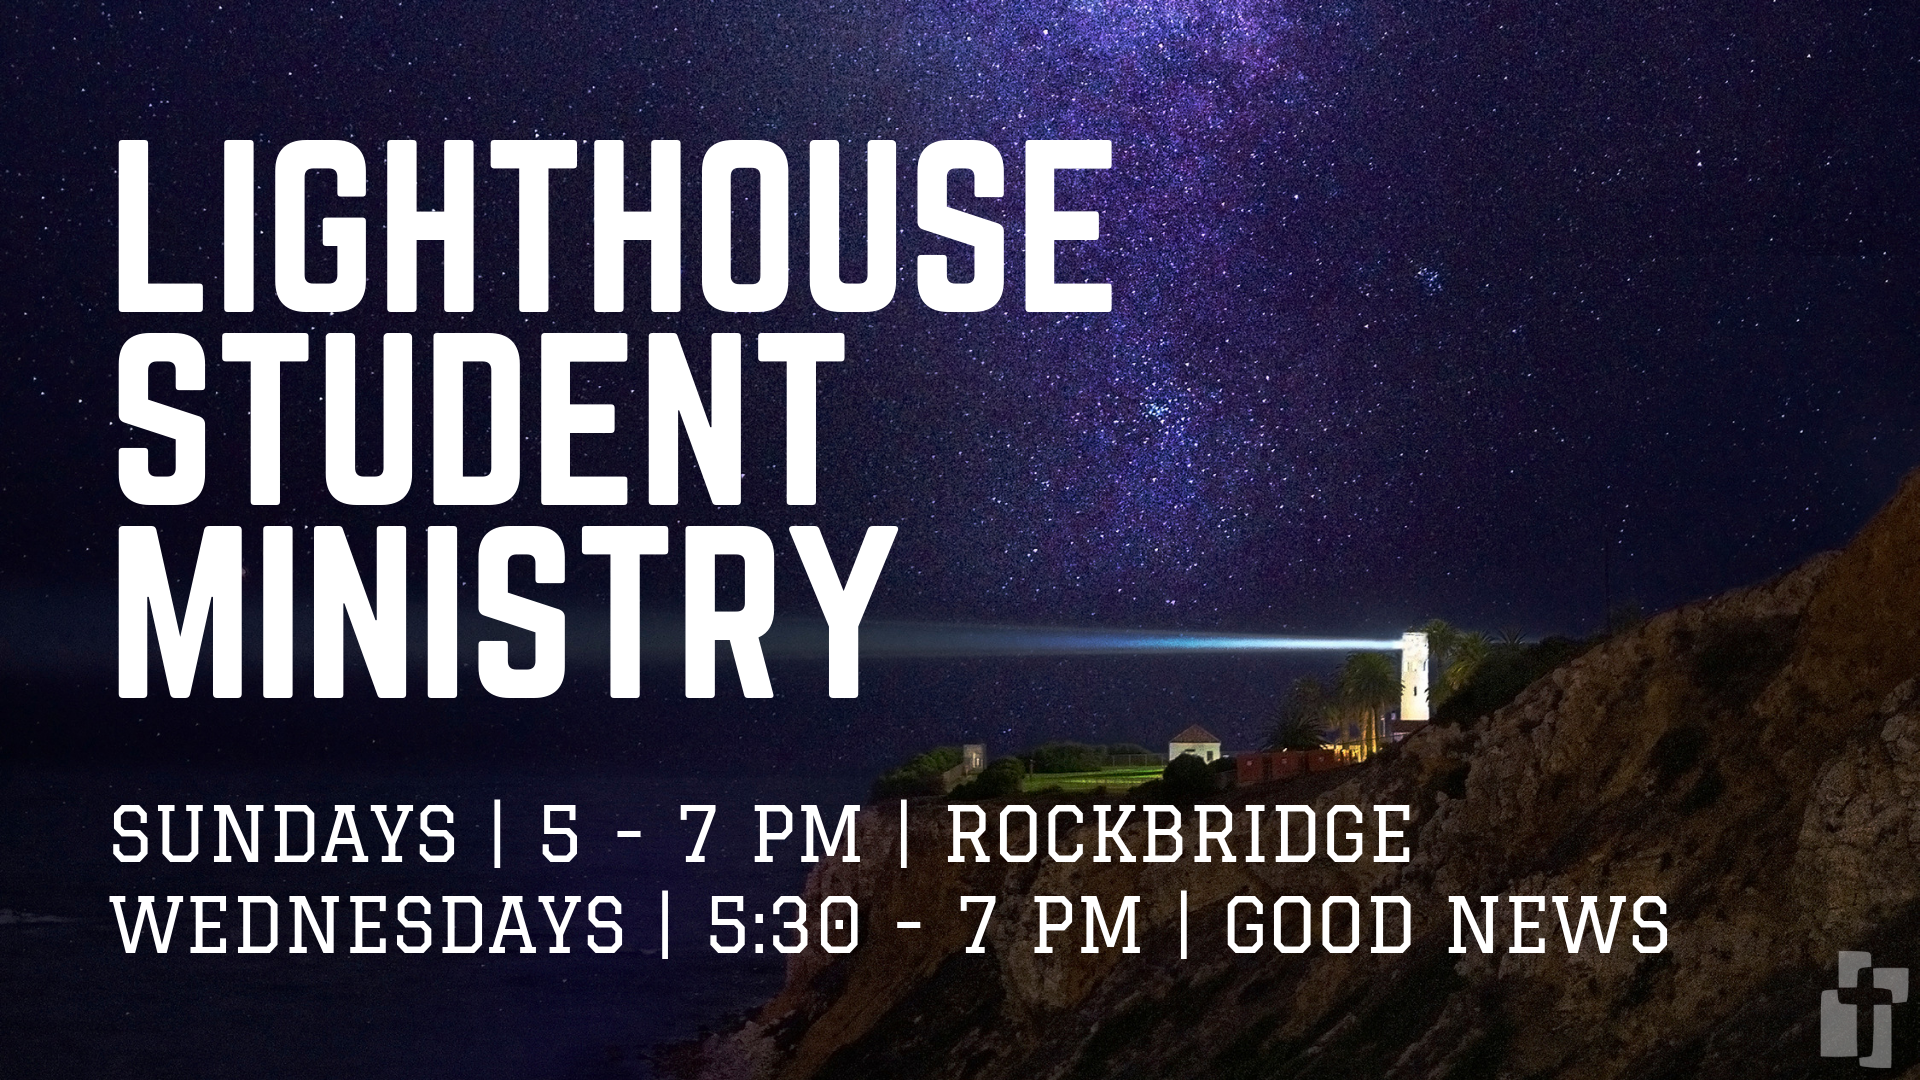 Lighthouse Student Ministry: Sundays 5-7 at Rockbridge, Wednesdays 5:30-7 at Good News